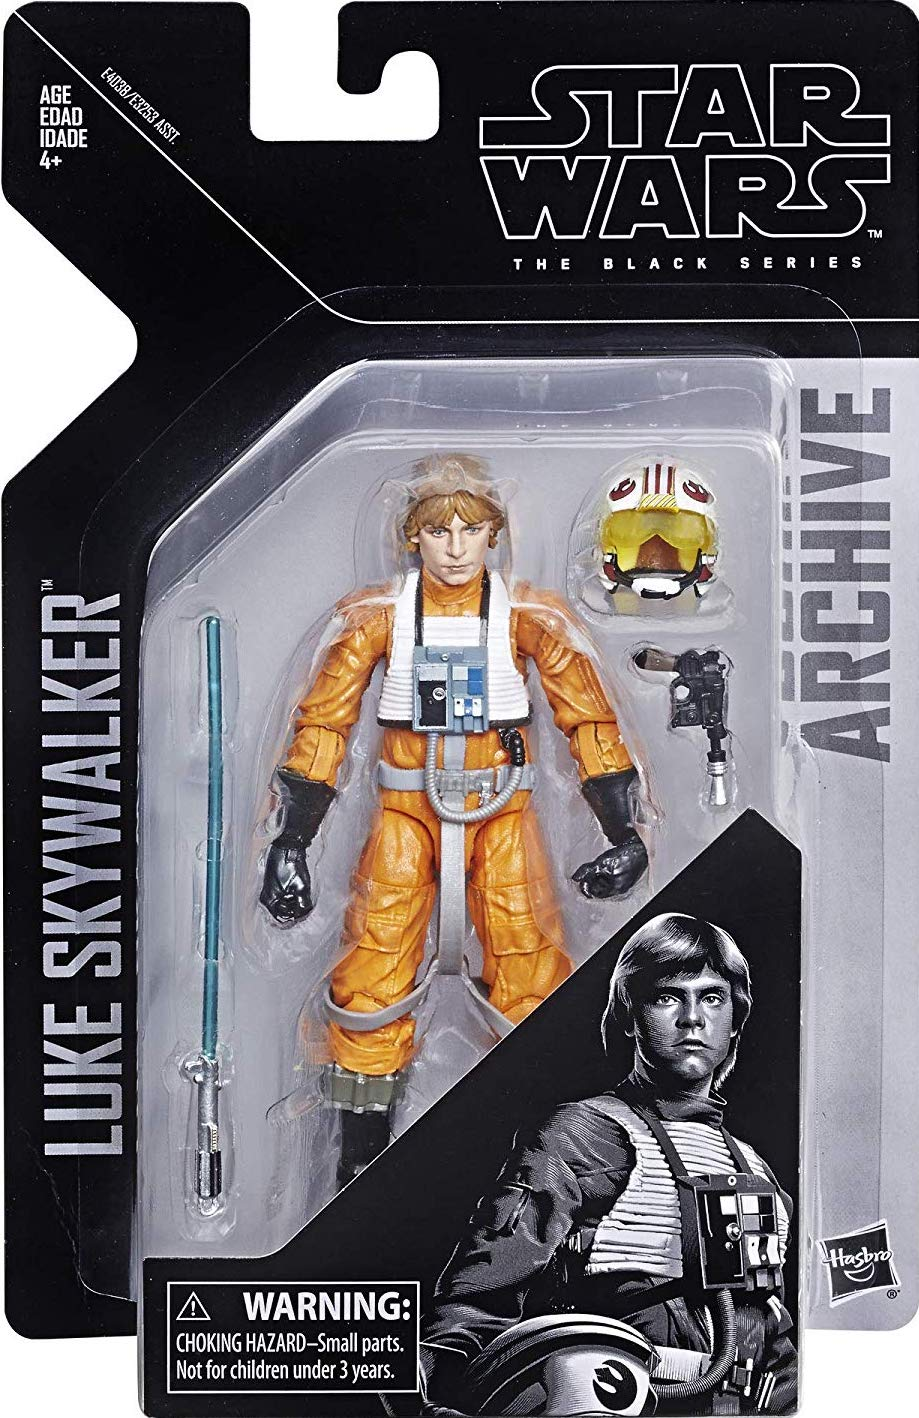 Luke Skywalker - Star Wars The Black Series Archive Action Figure